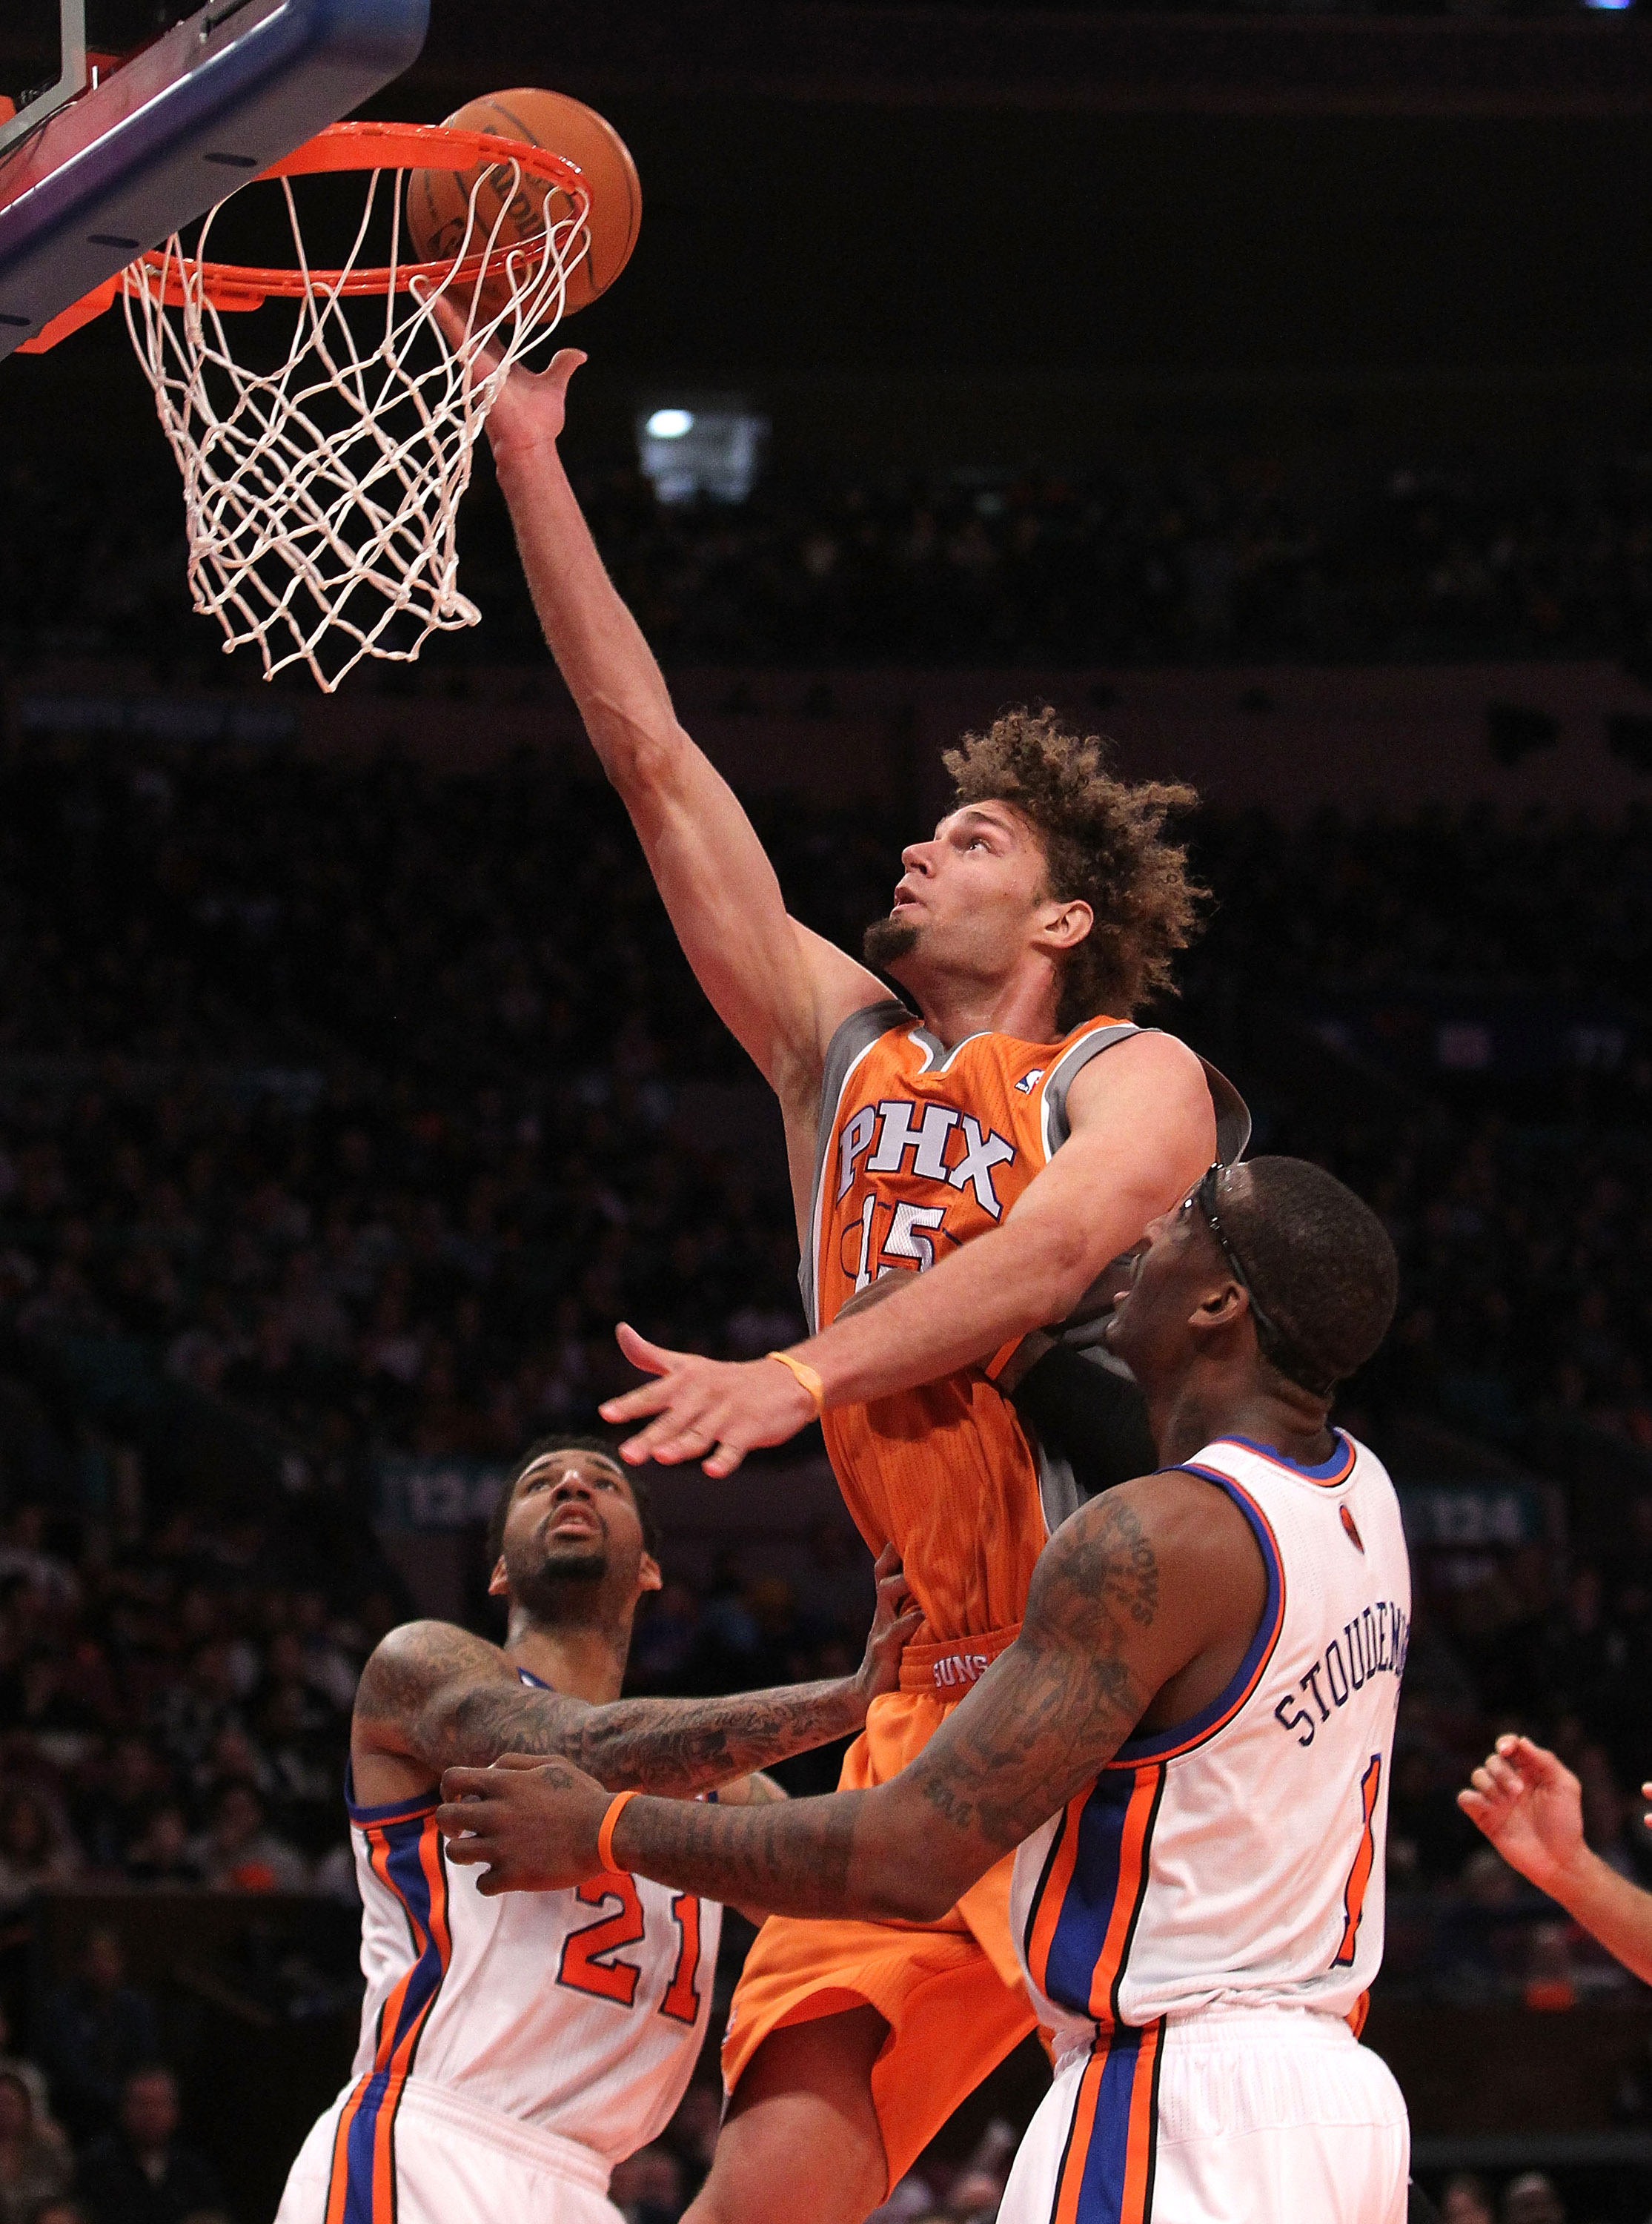 NEW YORK, NY - JANUARY 17: Robin Lopez #15 of the Phoenix Suns shoots the ball over Wilson Chandler #21 and Amar'e Stoudemire #1 of the New York Knicks at Madison Square Garden on January 17, 2011 in New York City. NOTE TO USER: User expressly acknowledge